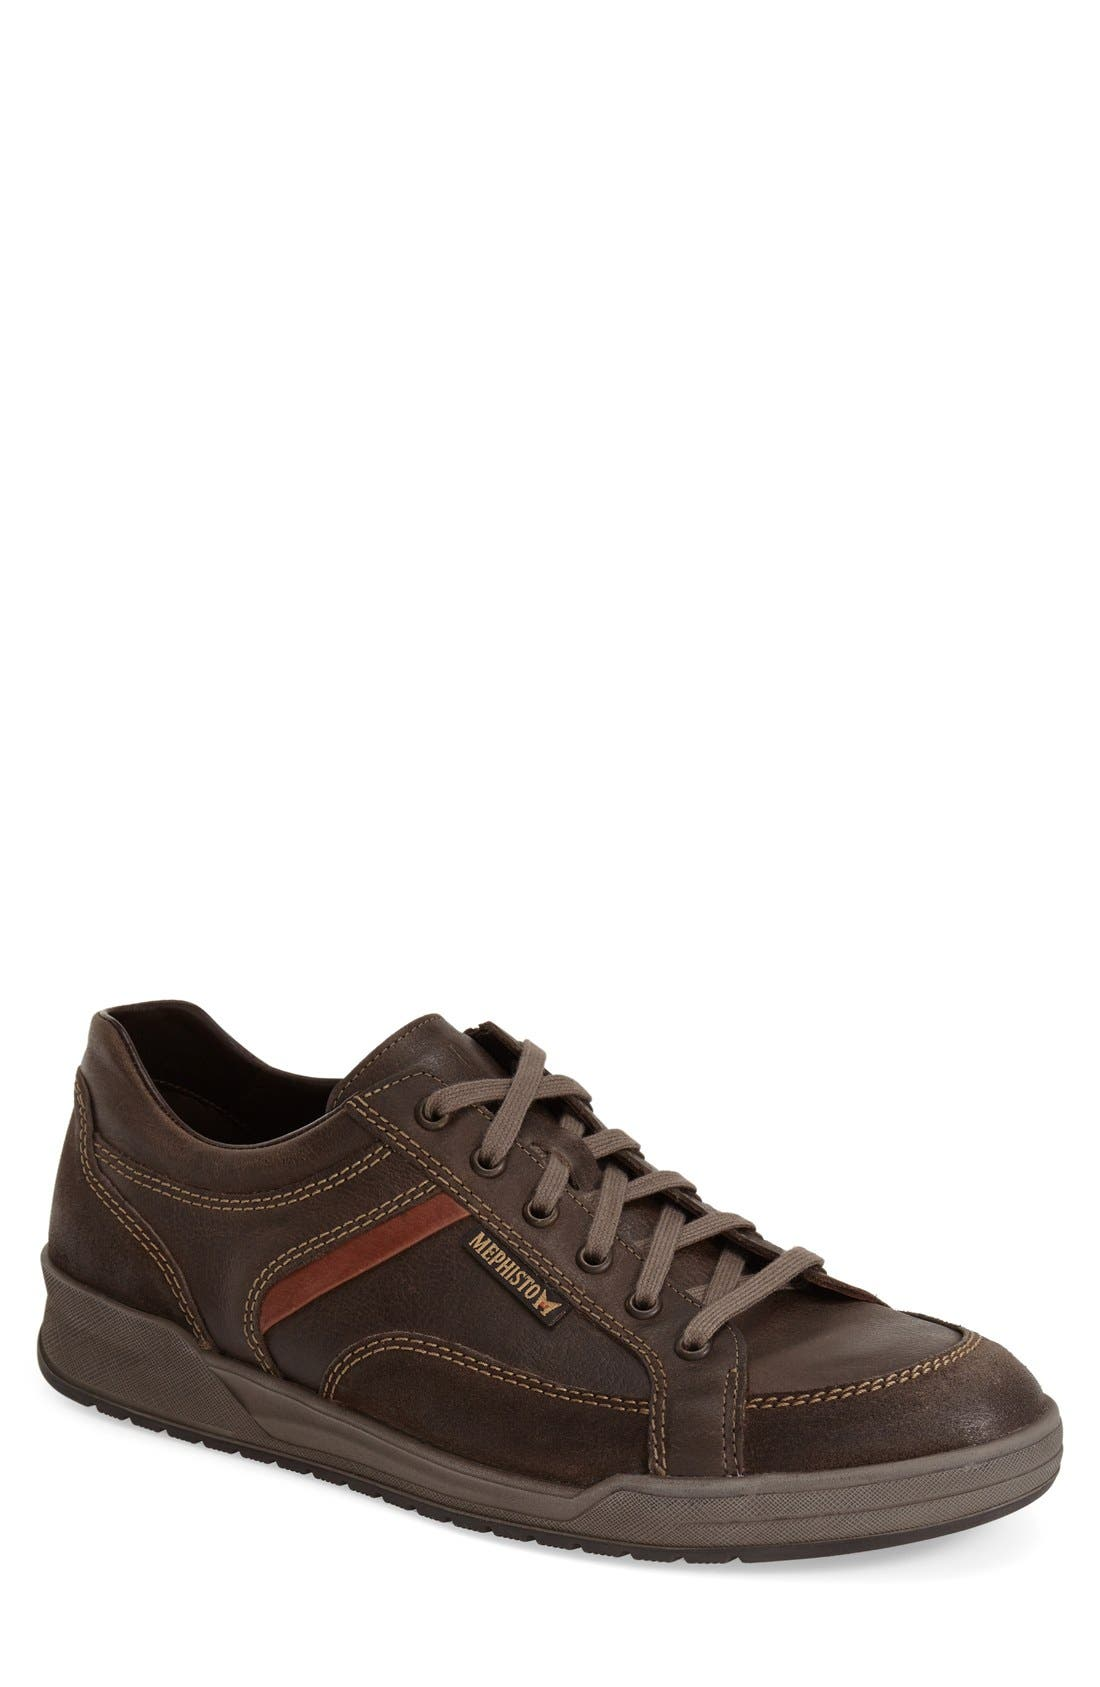 Alternate Image 1 Selected - Mephisto 'Rodrigo' Sneaker (Men)